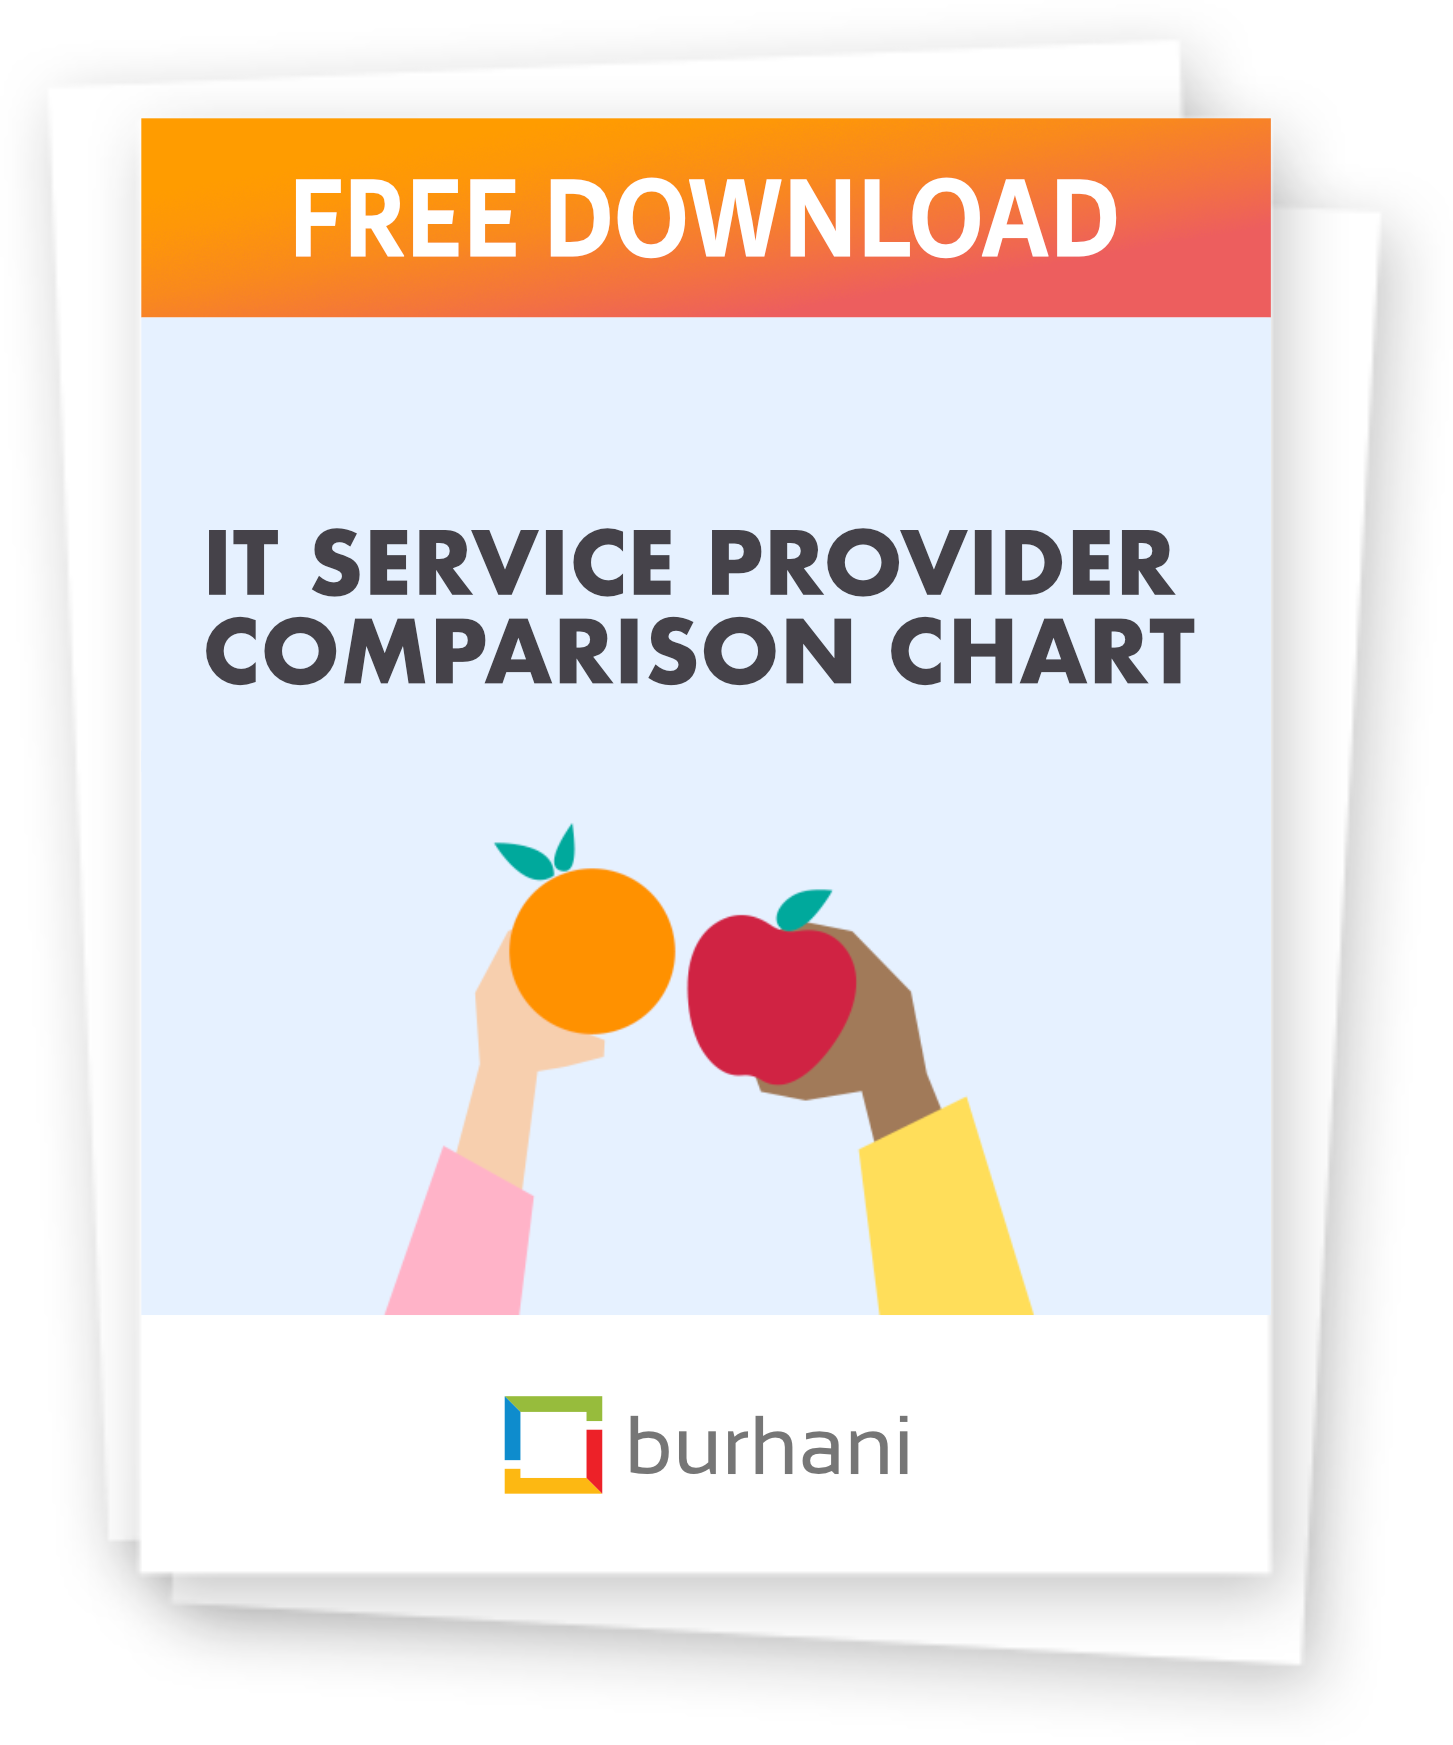 IT Services Provider in Dubai - Comparison Chart